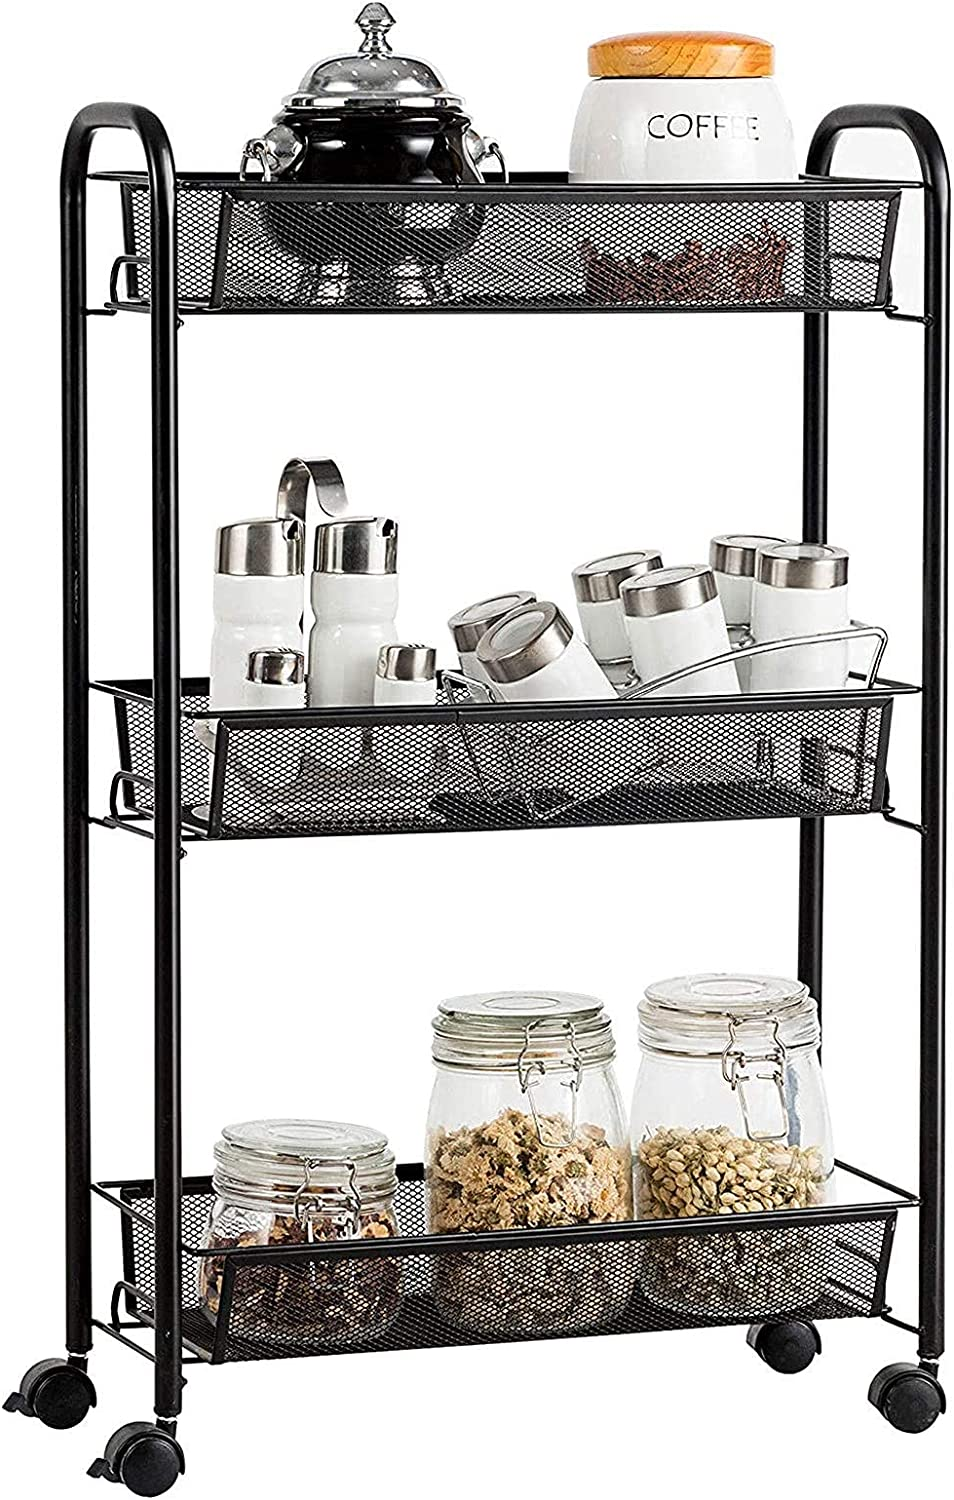 YLCS Kitchen Storage Recommended Trolley Nashville-Davidson Mall 3-Tier Rolling Rack